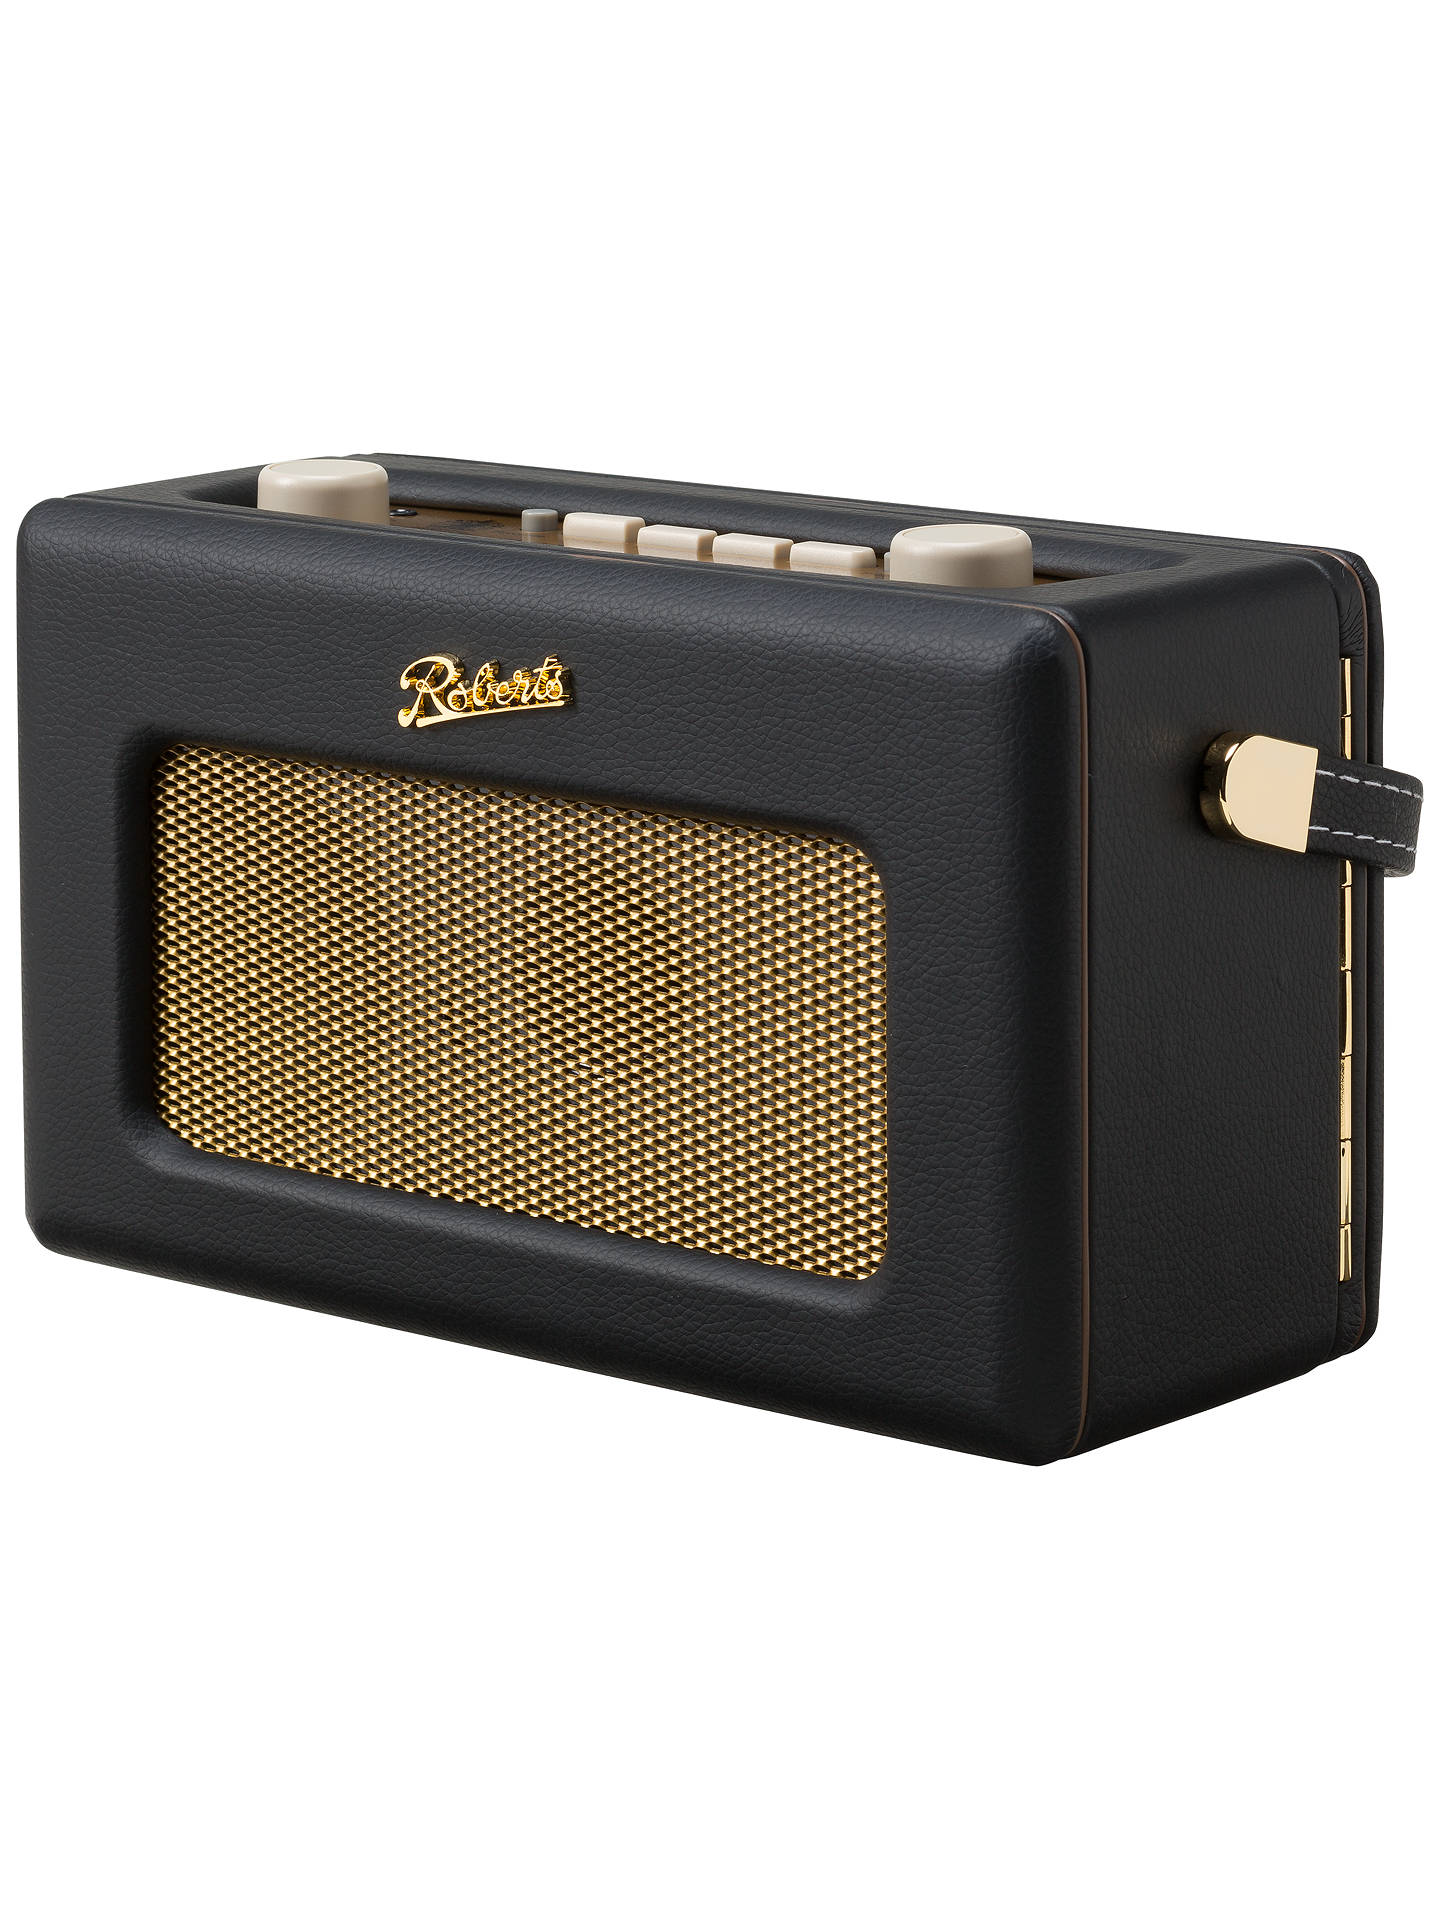 BuyROBERTS Revival RD60 DAB Digital Radio, Black/Gold Online at johnlewis.com